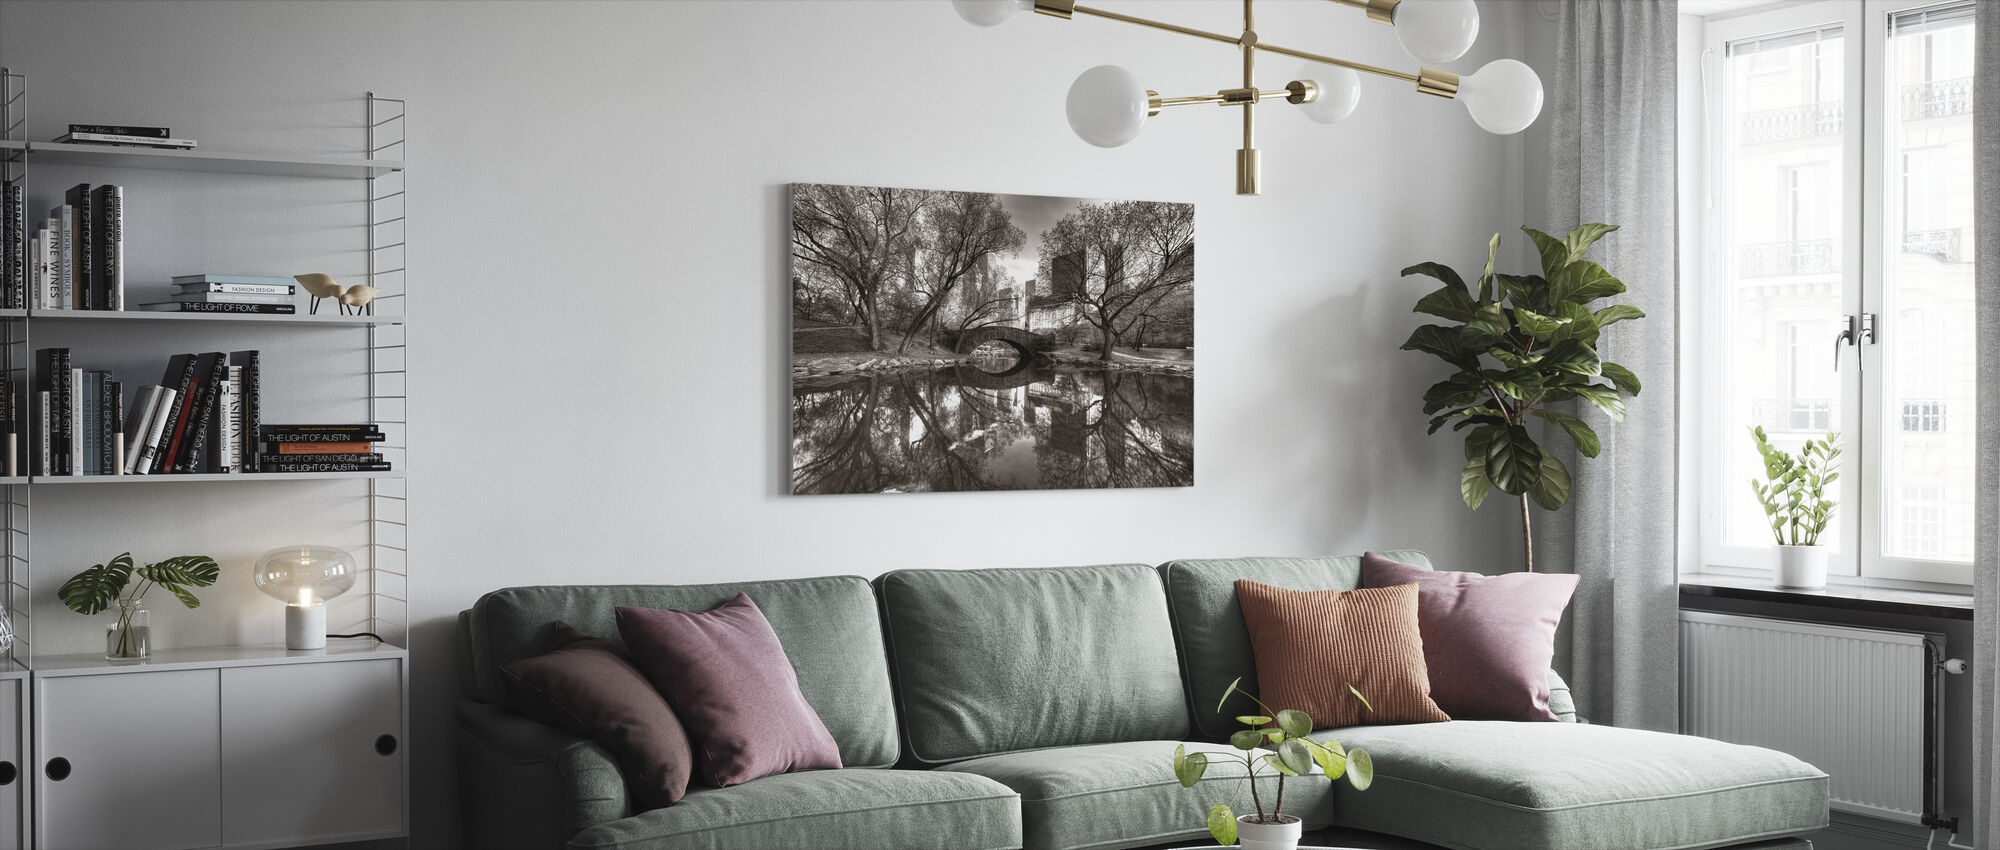 Bridge in Central Park, New York, USA - Canvas print - Living Room